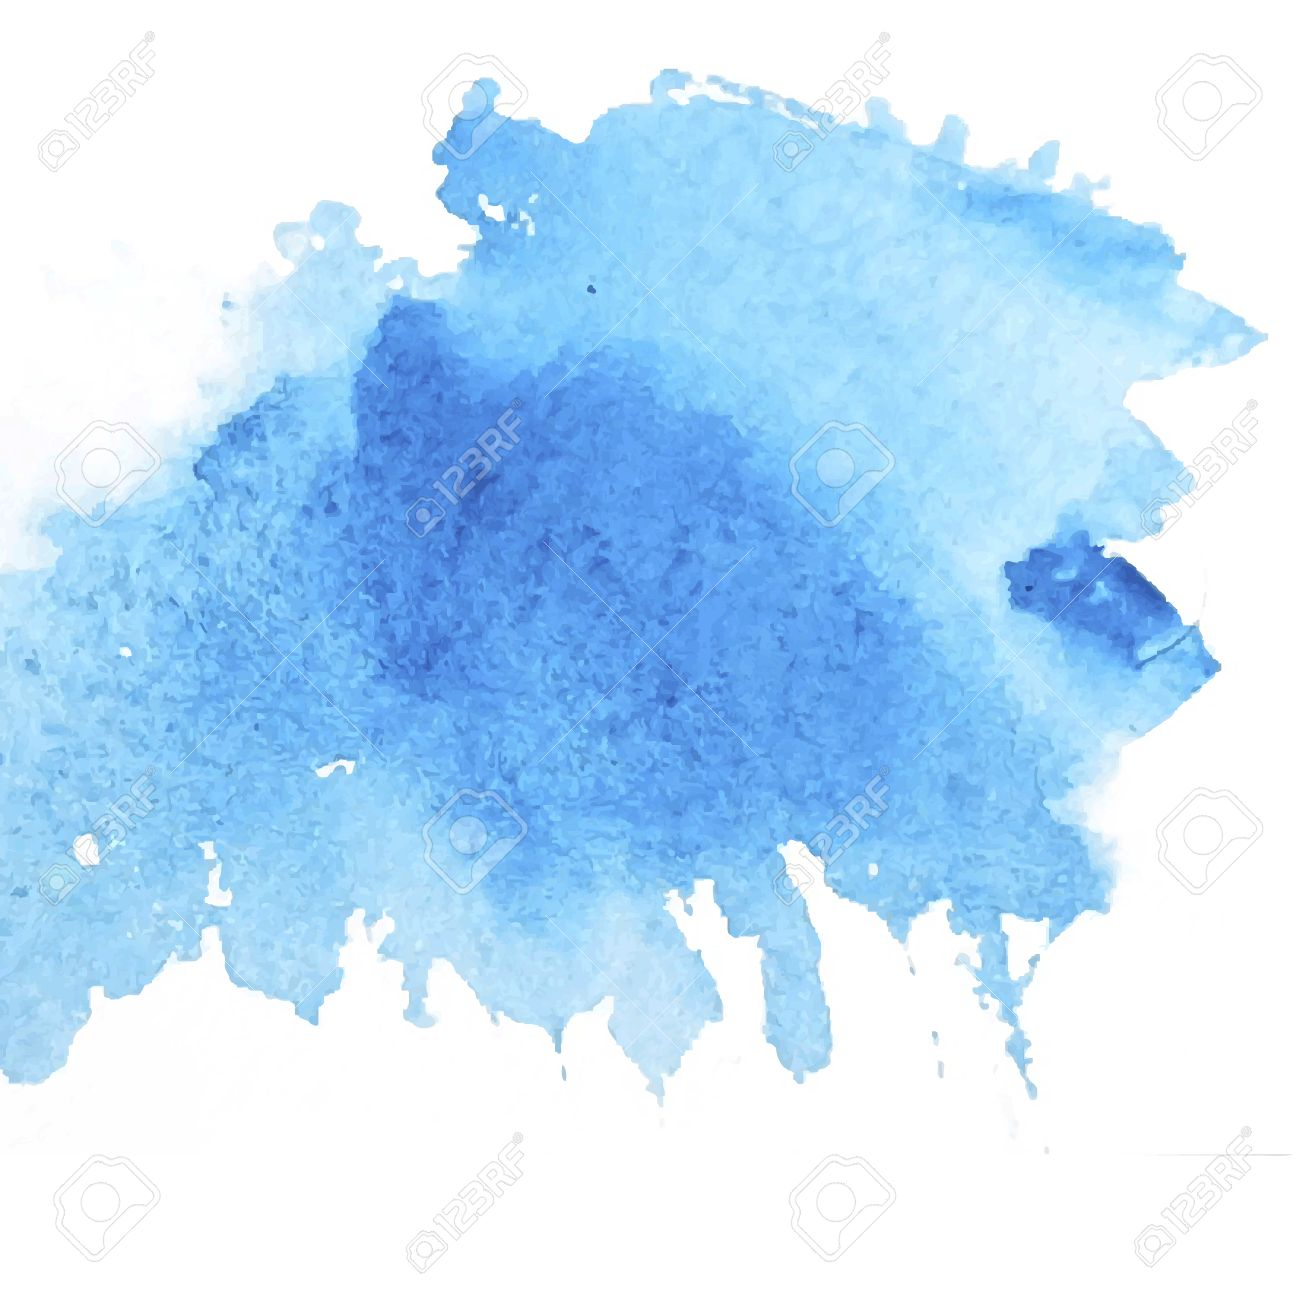 Light Water Blue Watercolor Banner For Web Design Vector